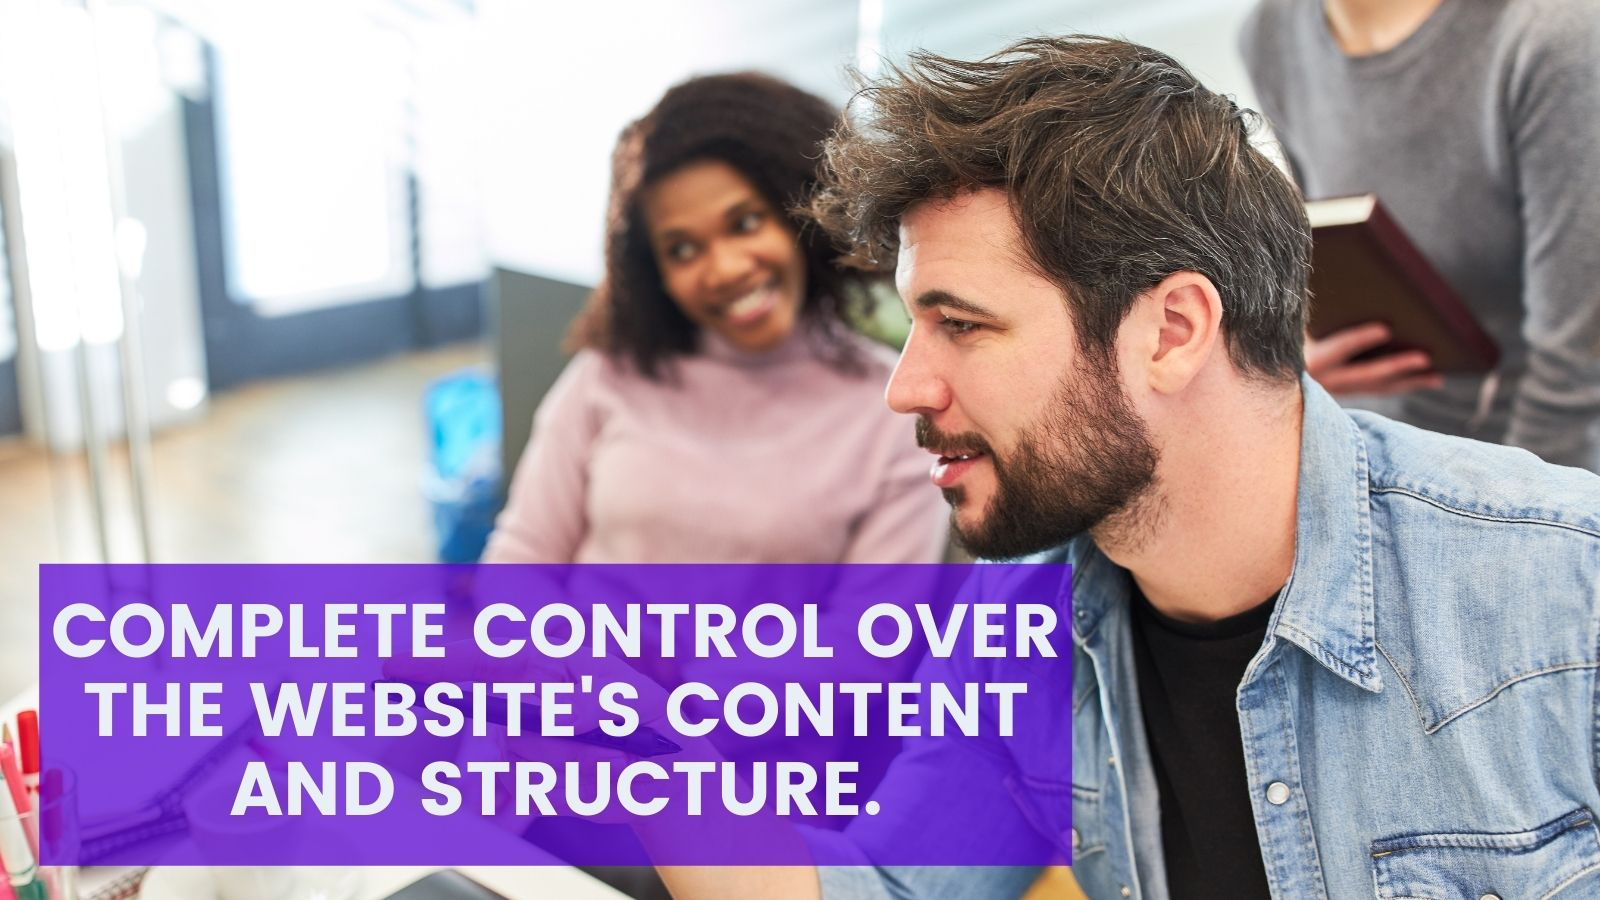 Marketers have control over website